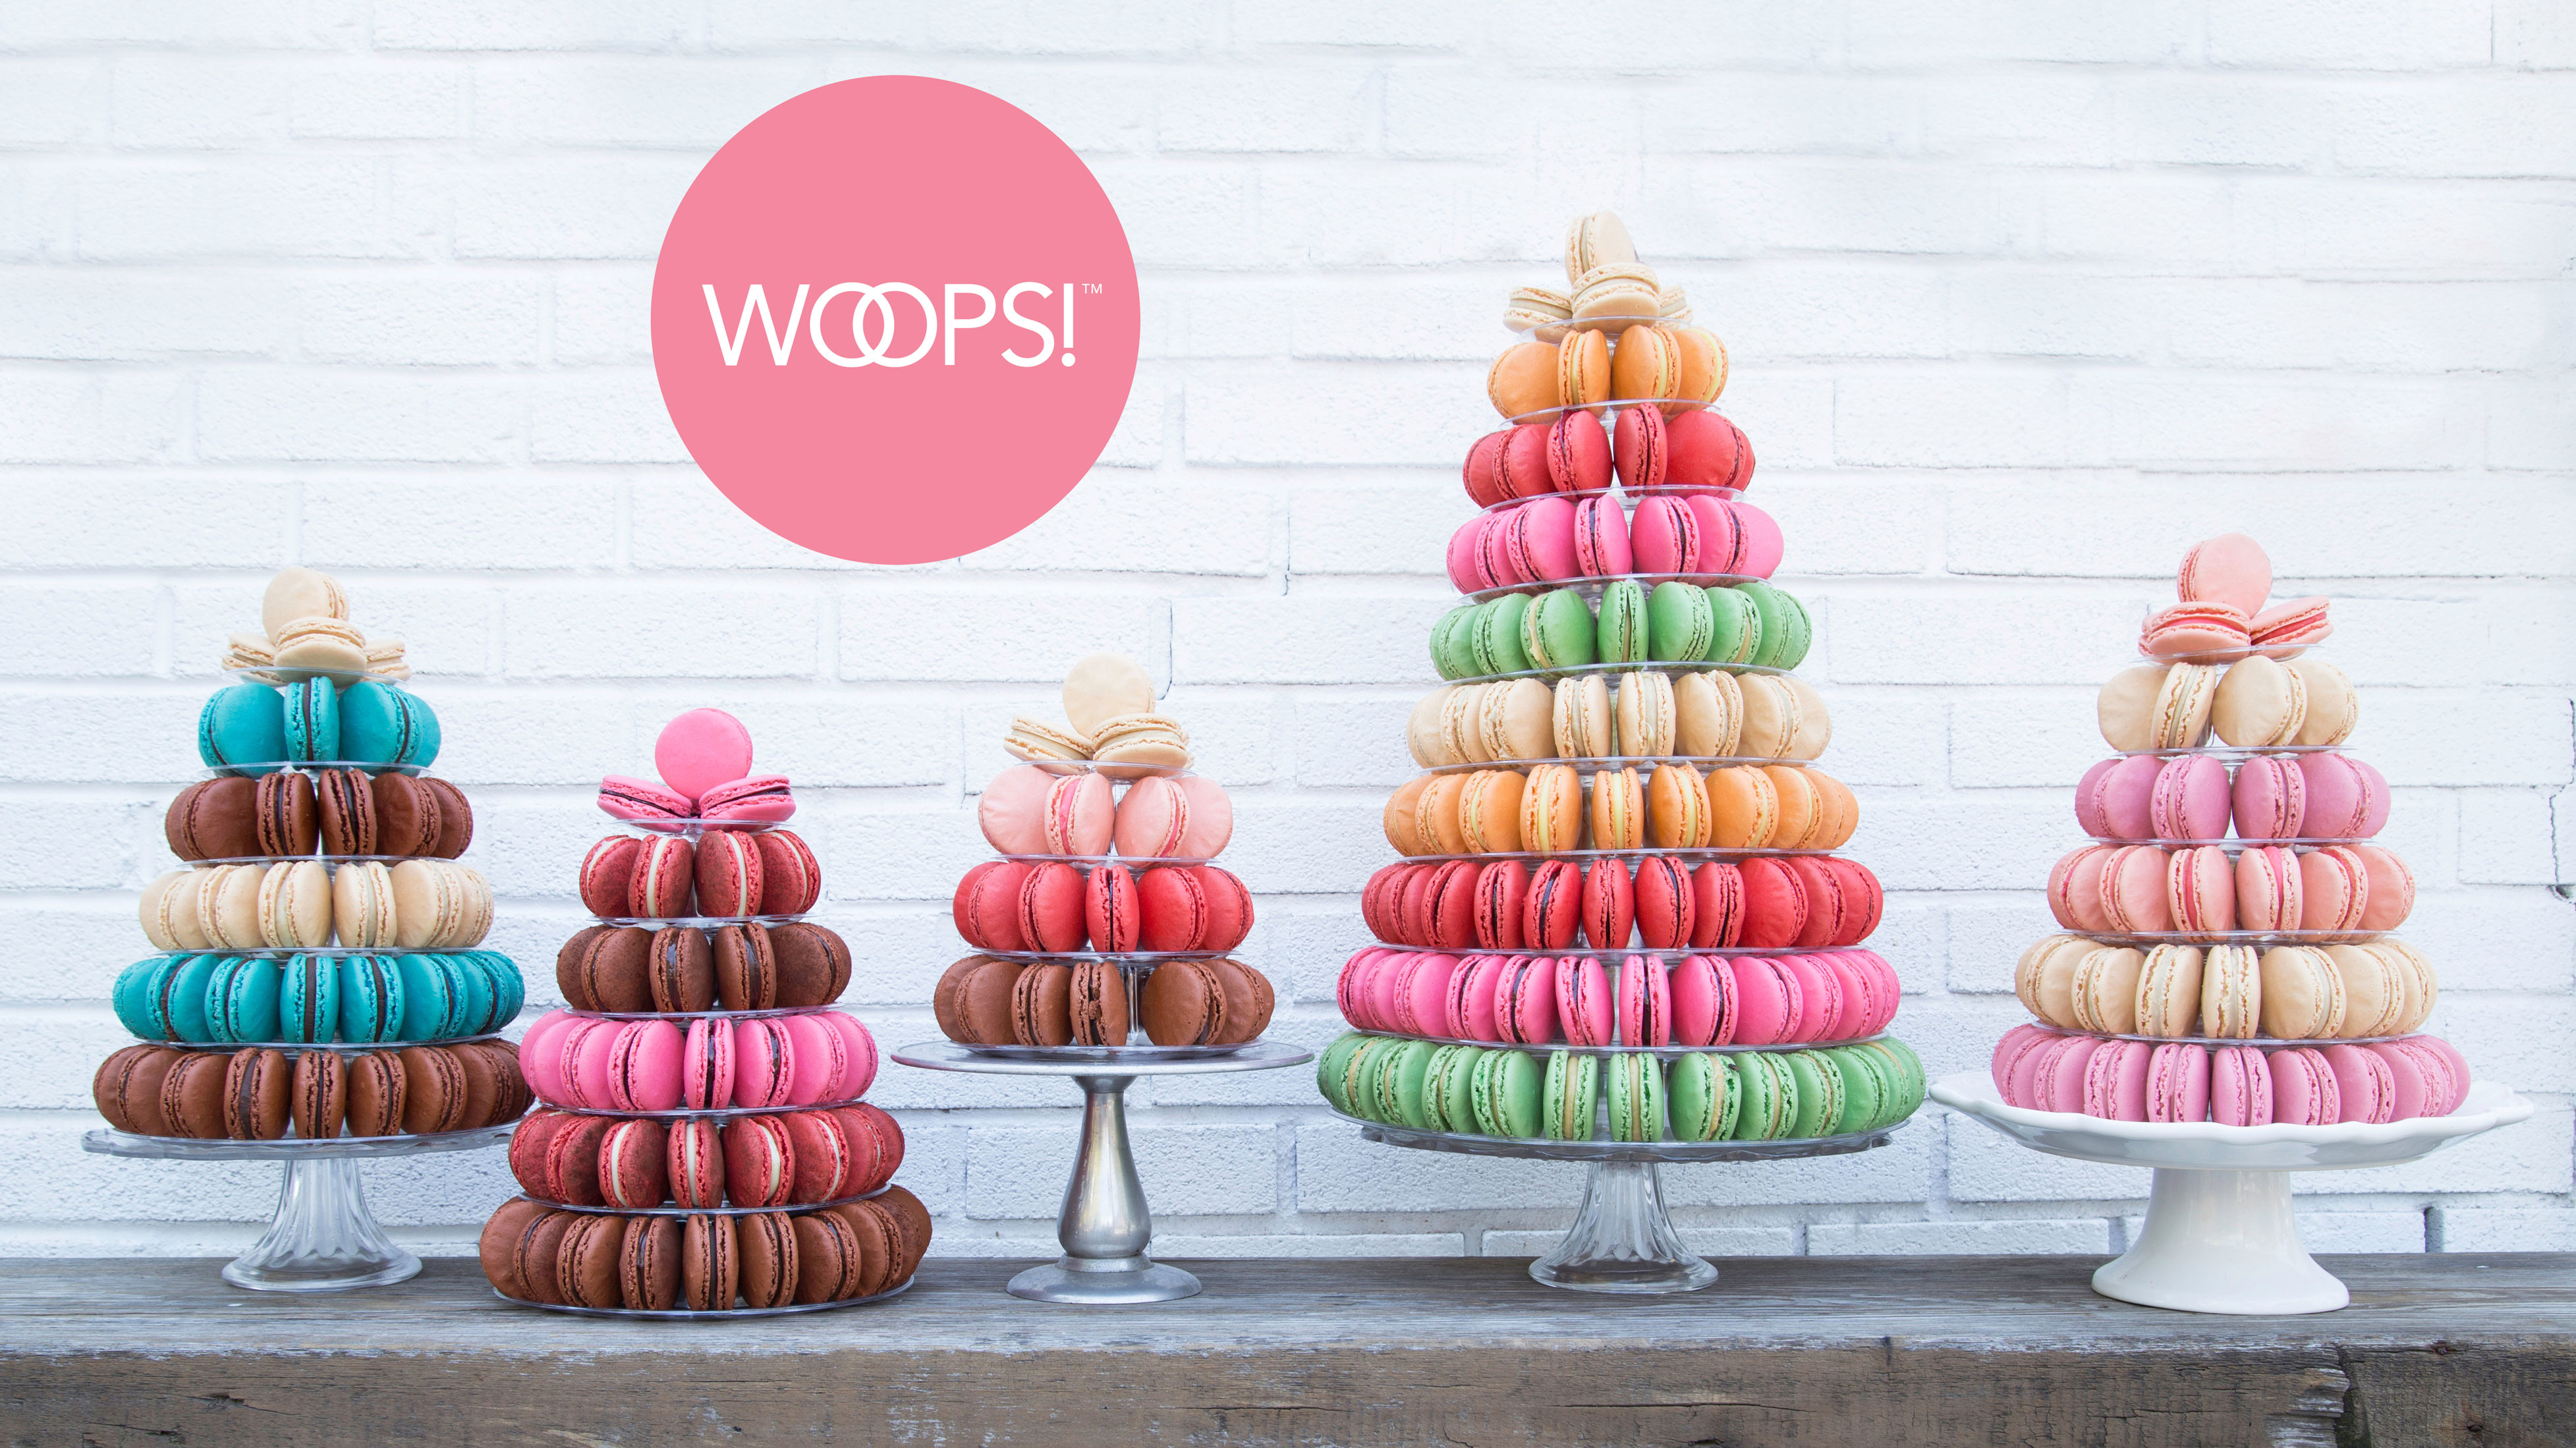 wedding-cake-alternatives-woops-macarons